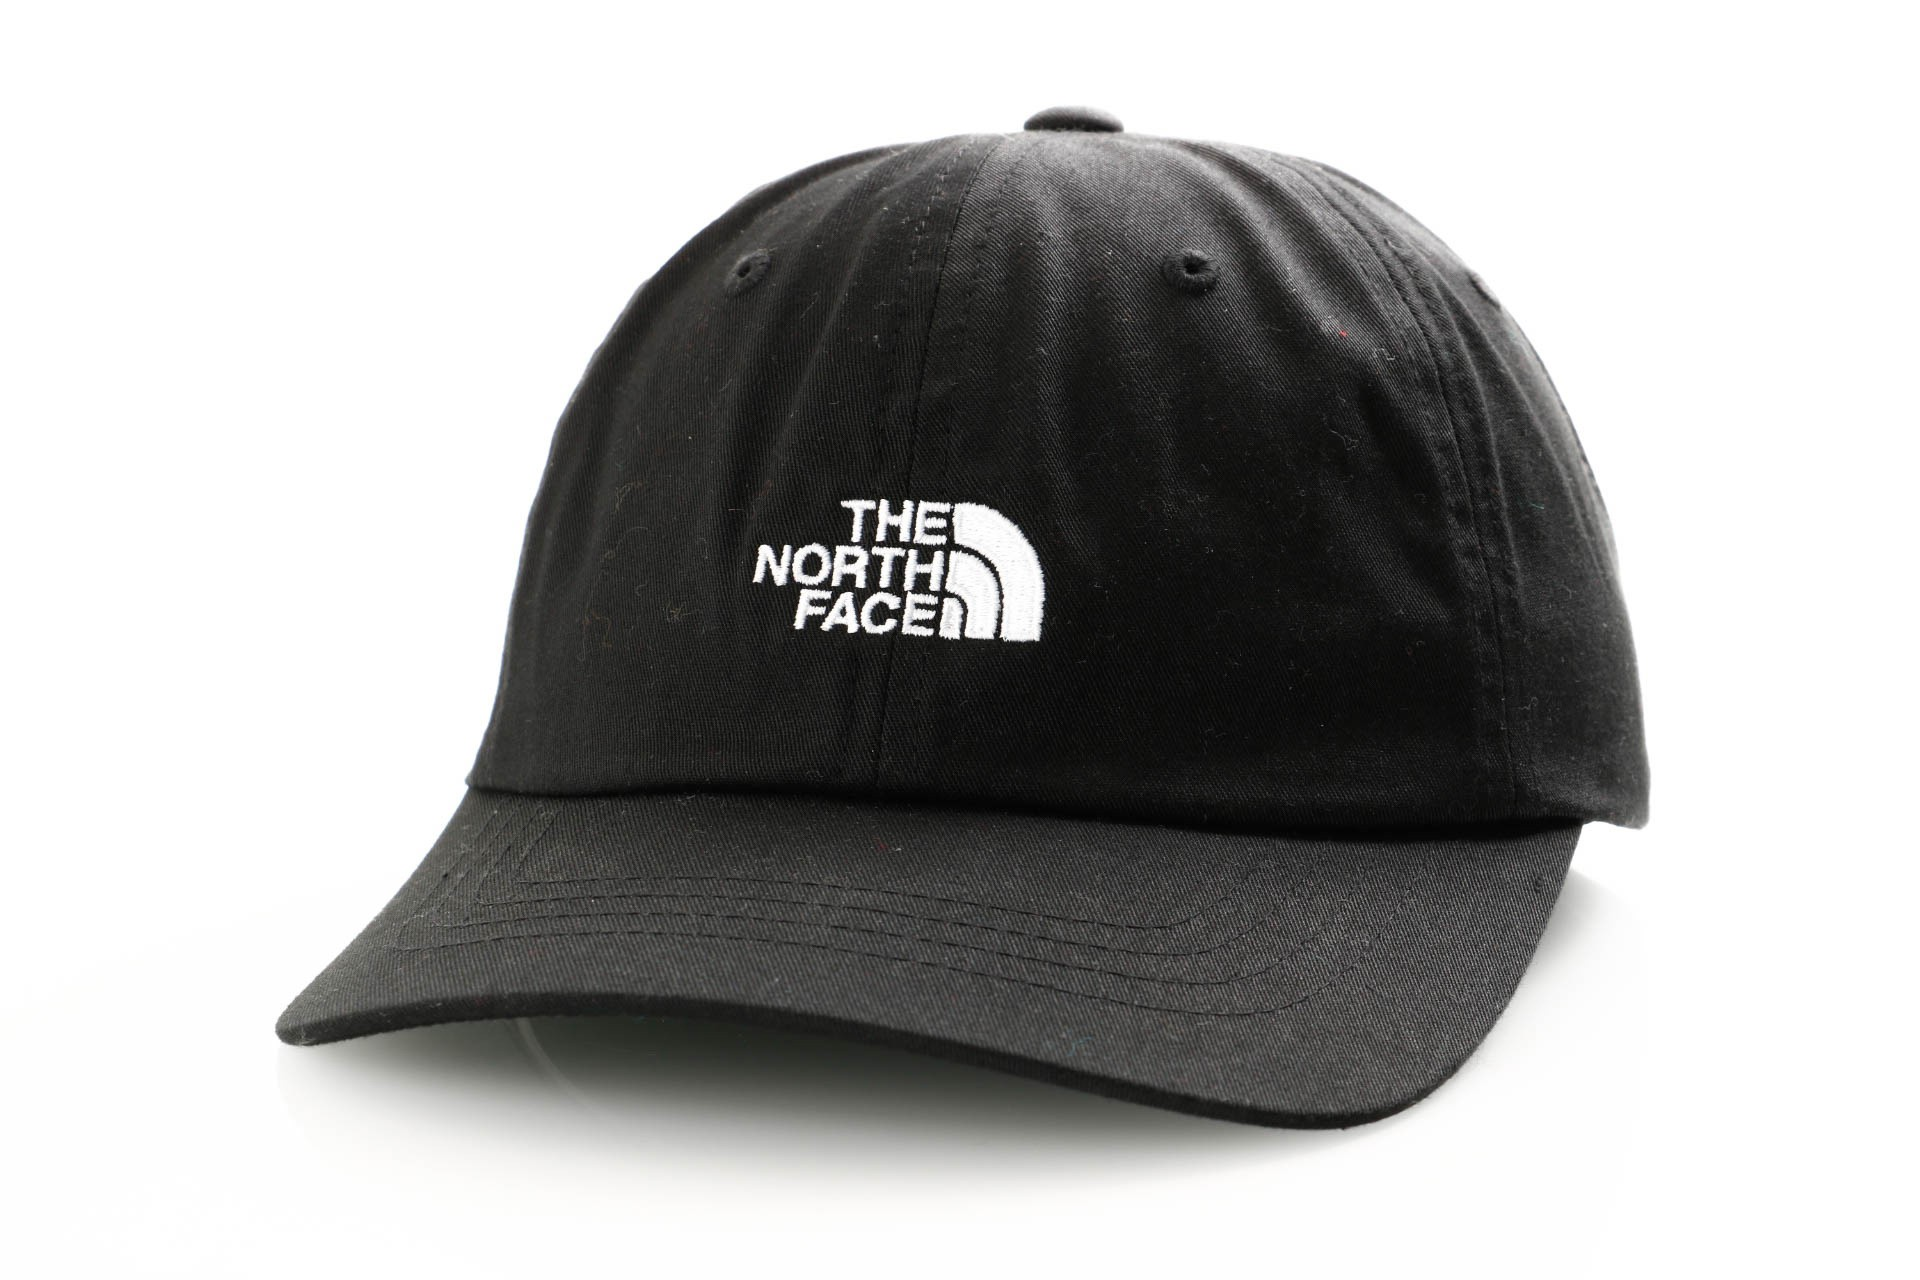 Afbeelding van The North Face The Norm Hat T9355Wcn7 Strapback Tnfblk/Tnfwhthtchtembrdry